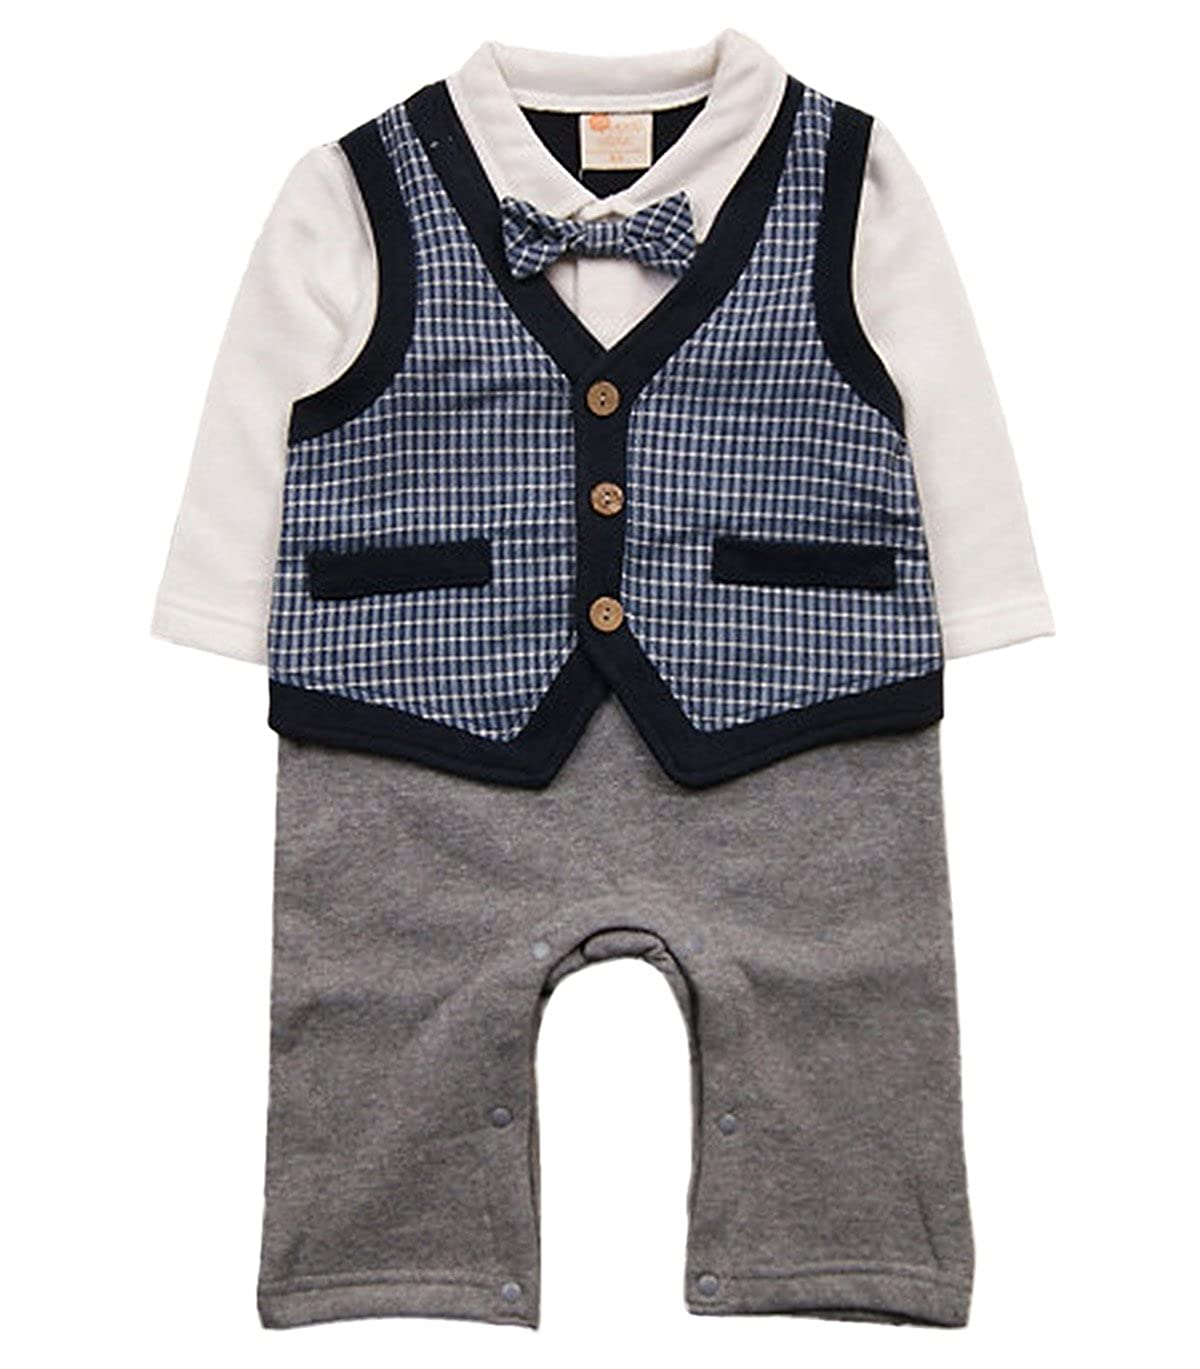 Baby Boy Plaid Formal Waistcoat Suit Infant Velvet Wedding Baptism Outfit Onesie Happy Cherry